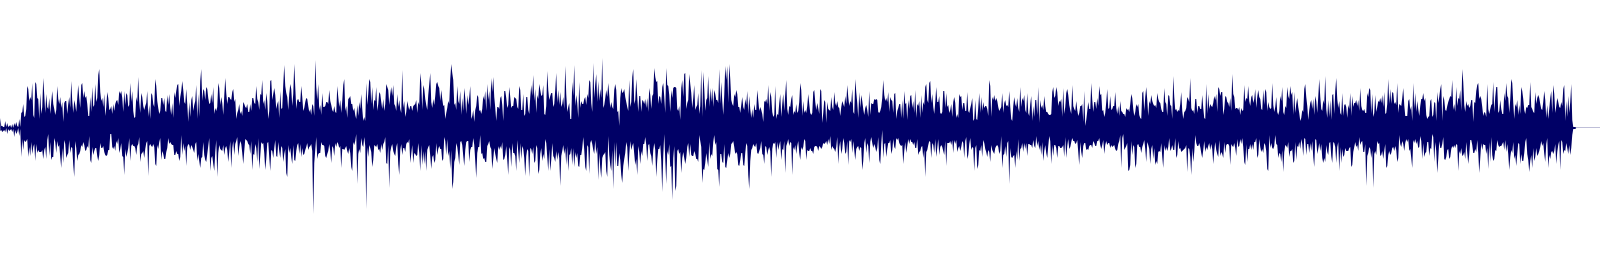 waveform of track #127161